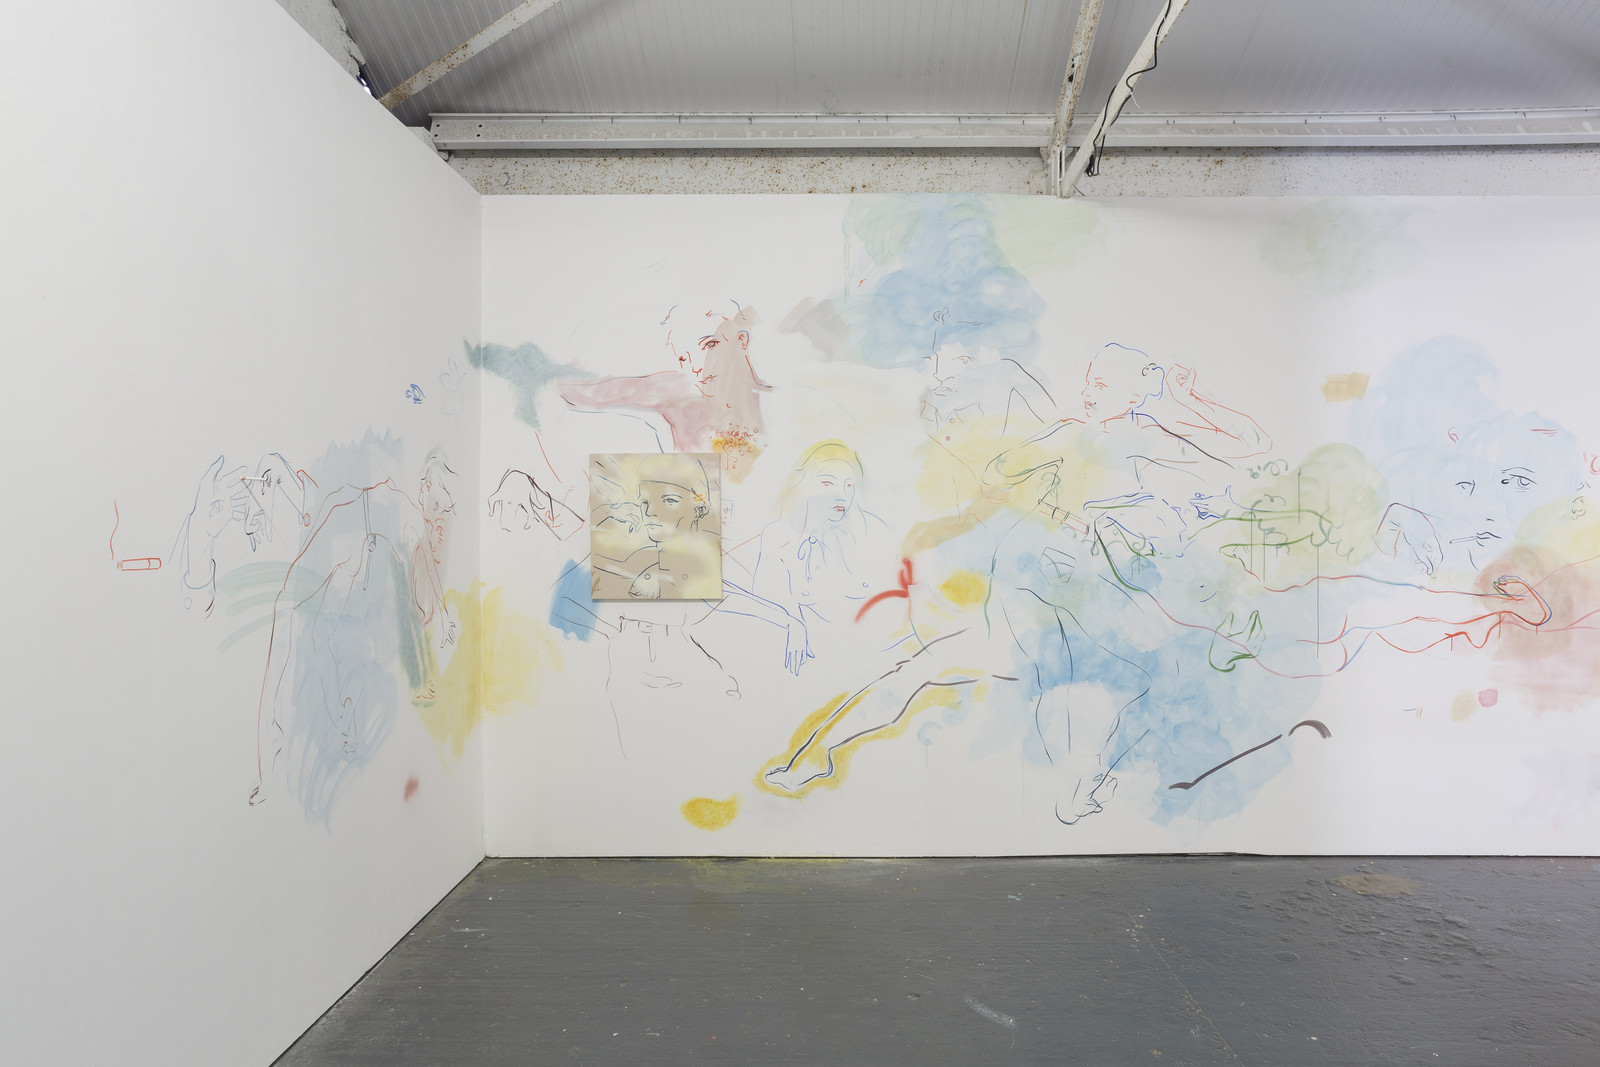 Installation view (2) of site-specific wall mural France-Lise McGurn, Soft, psychic, sweet surprise, 2016, acrylic, spray paint and cigarettes